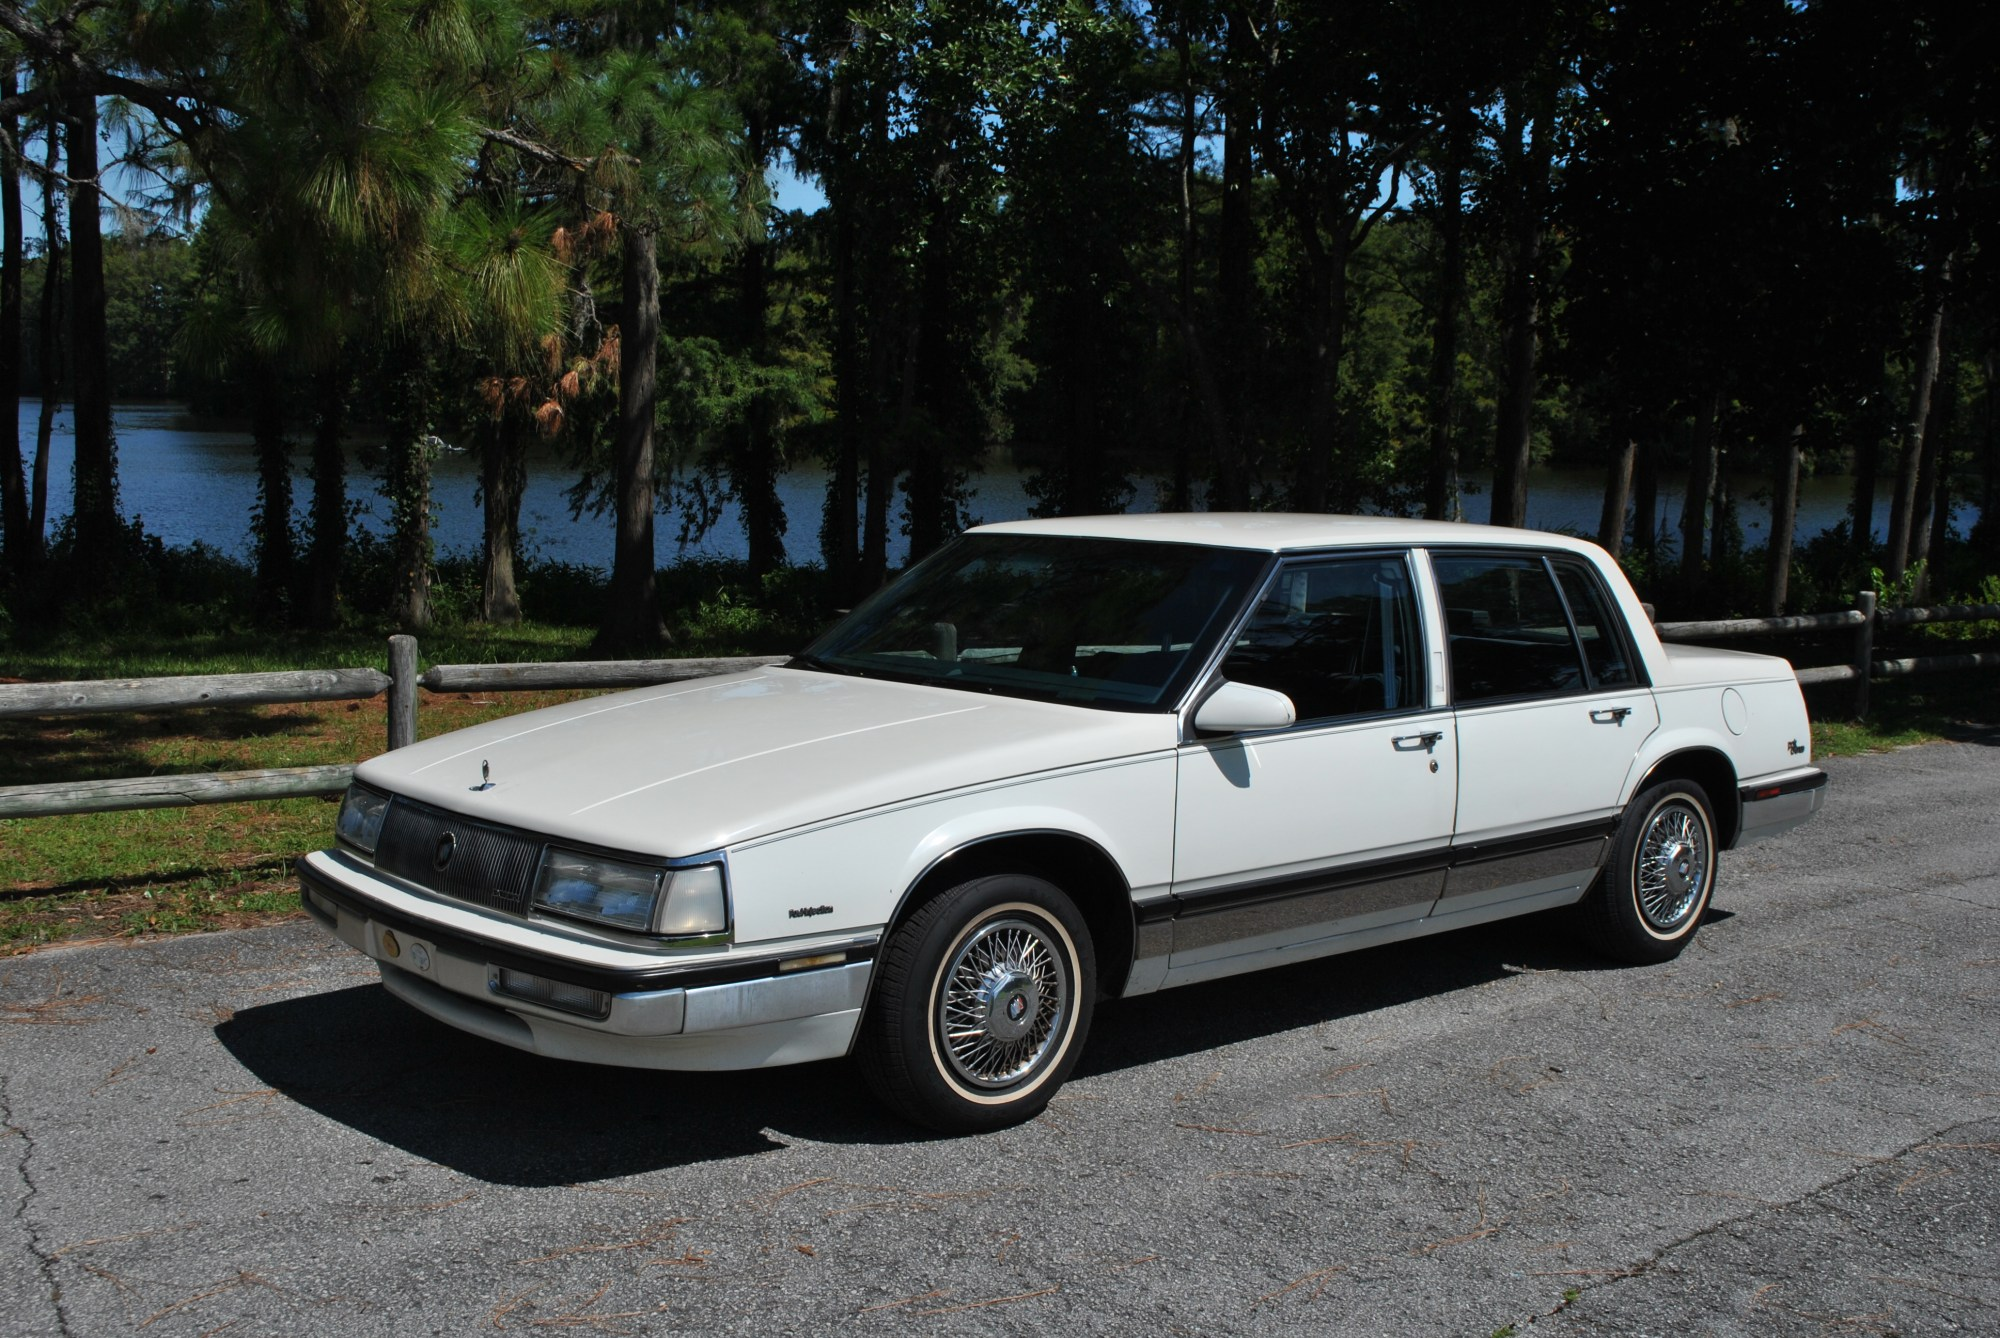 hight resolution of this is an excellent chance to own a well maintained aaca original hpof car at a bargain price car is located in wilmington nc zip code 28401